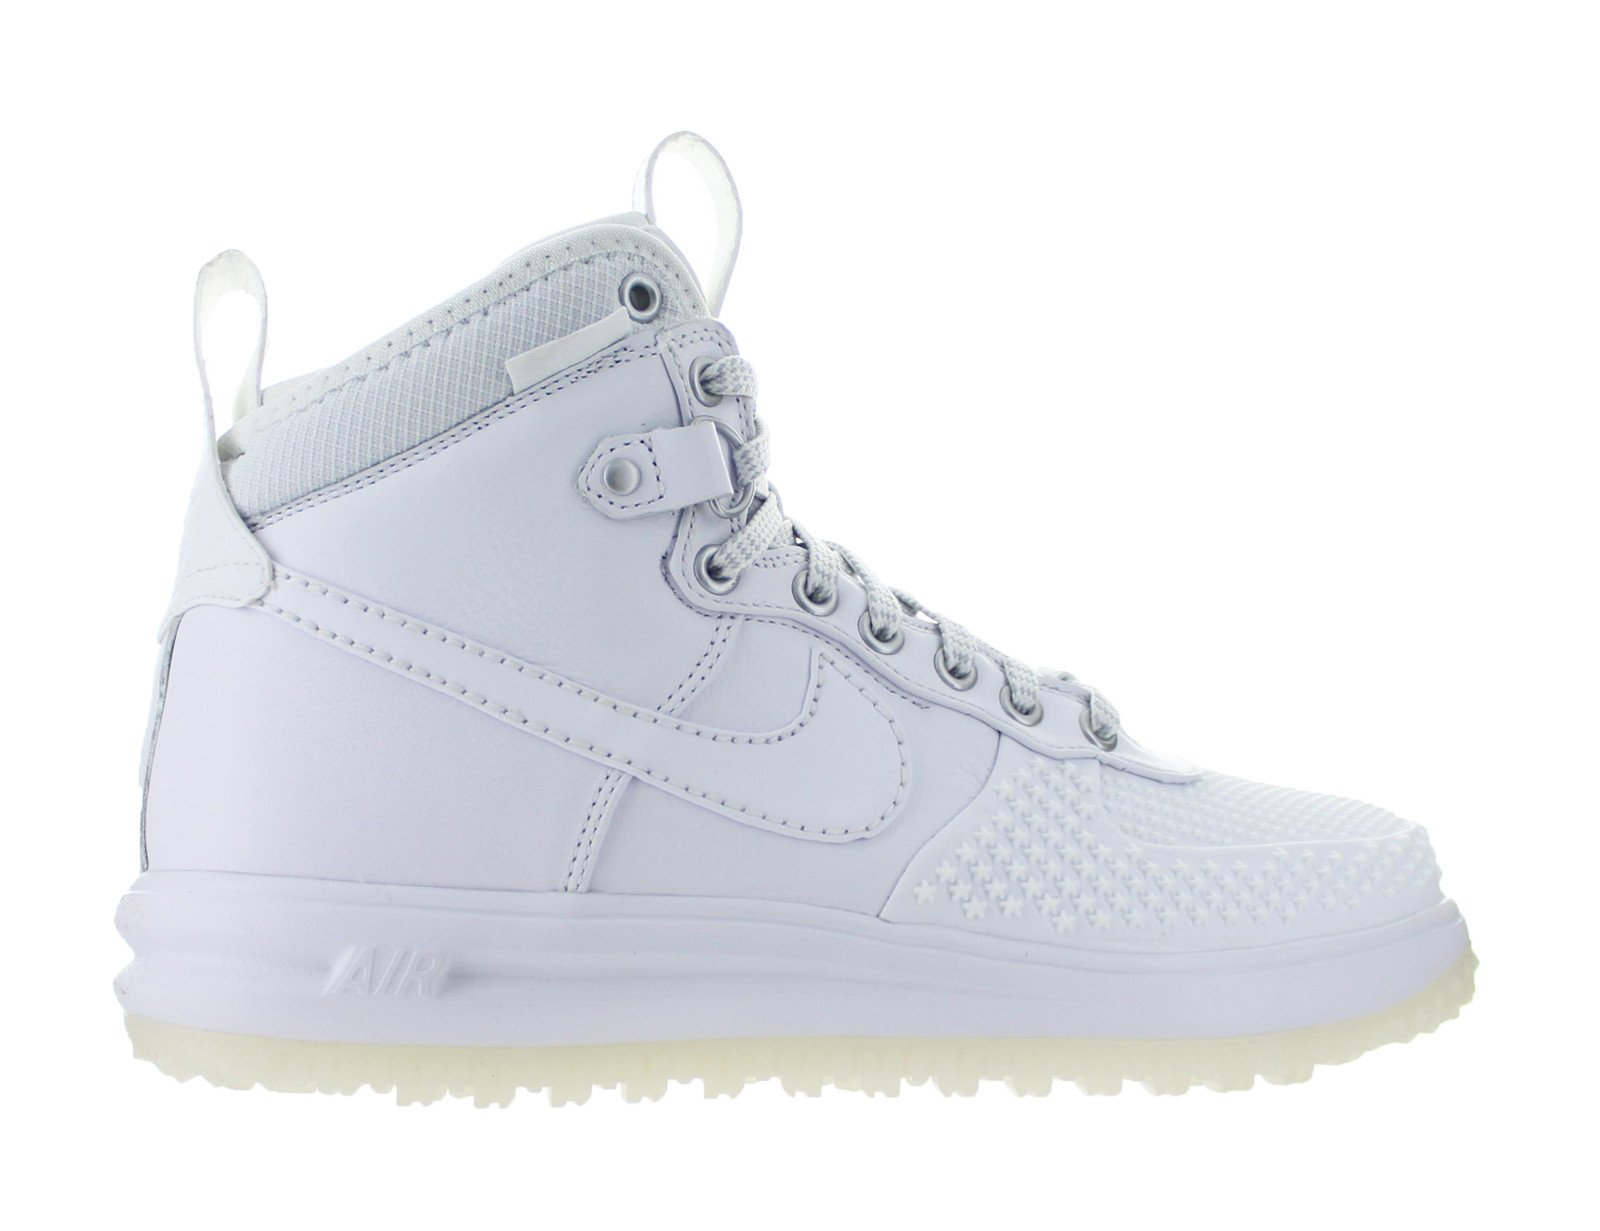 100% authentic 28bc7 d199d ... france nike mens nike lunar force 1 duckboot triple white 805899 101  walmart 31870 87861